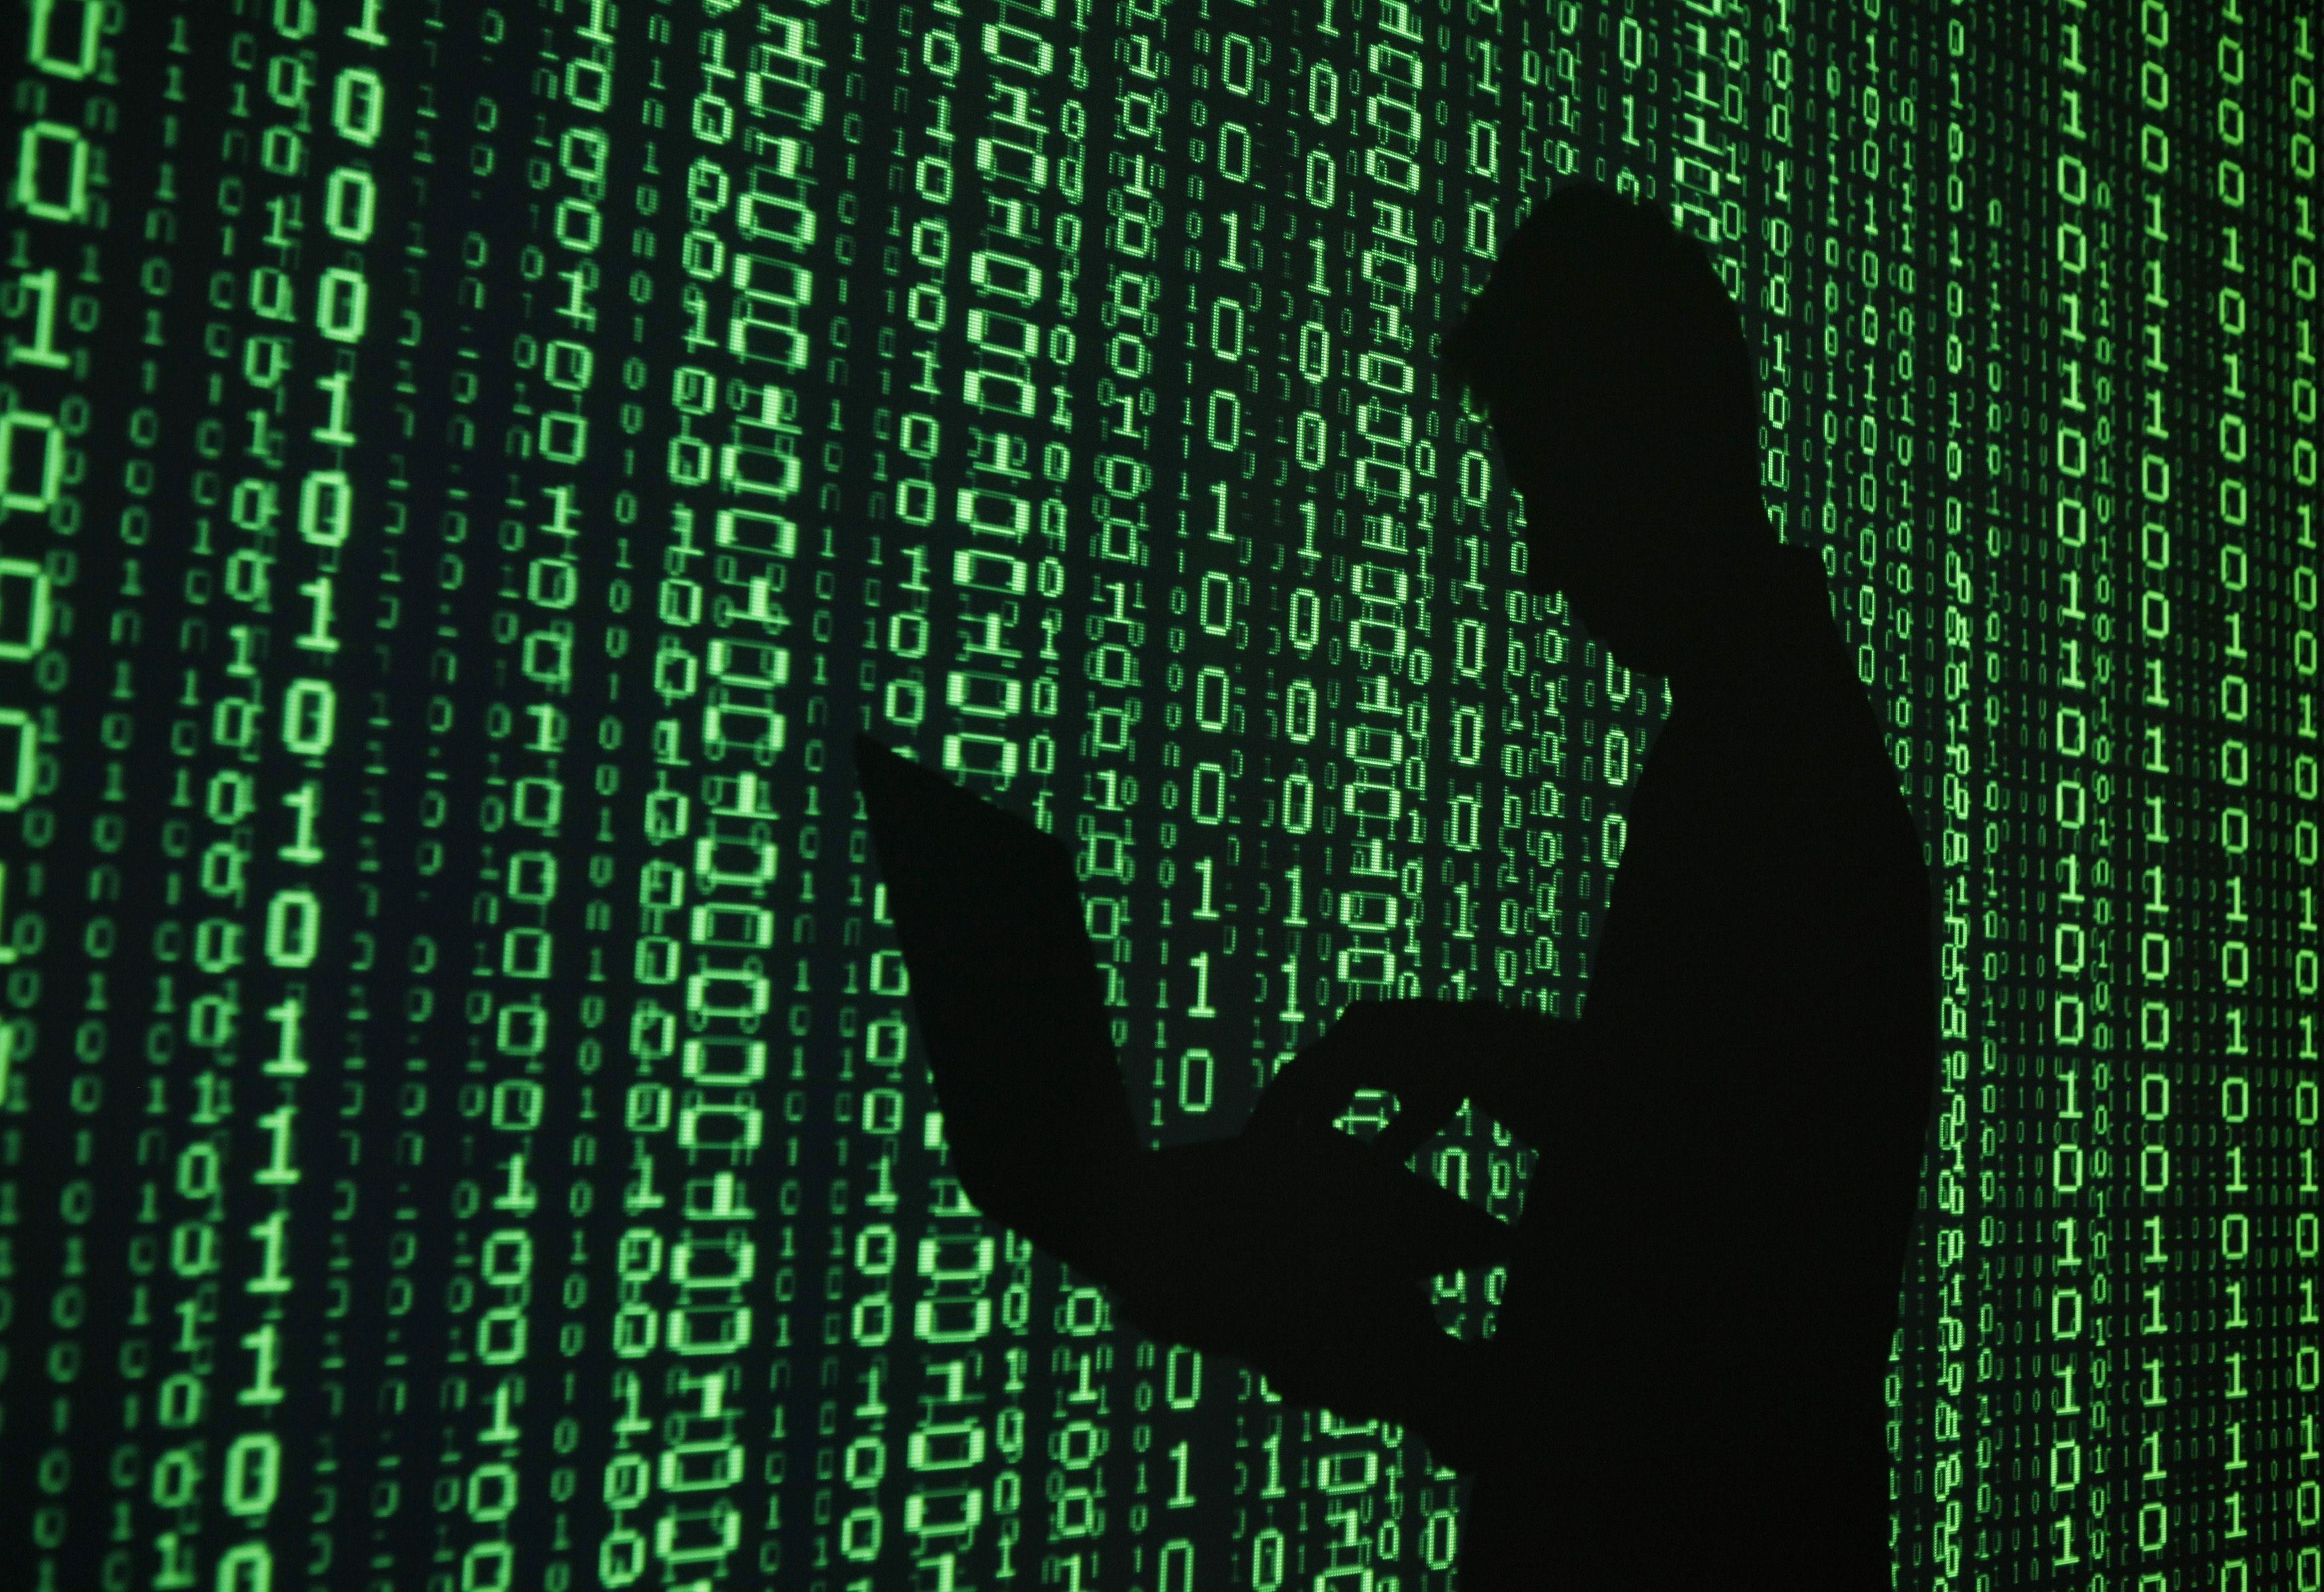 BBB Alert: Potential data breach may affect 1 billion people worldwide. Learn how to protect your identity and secure your personal data Better Business Bureau serving Alaska, Oregon, & Western http://bbb.org/h/6rz